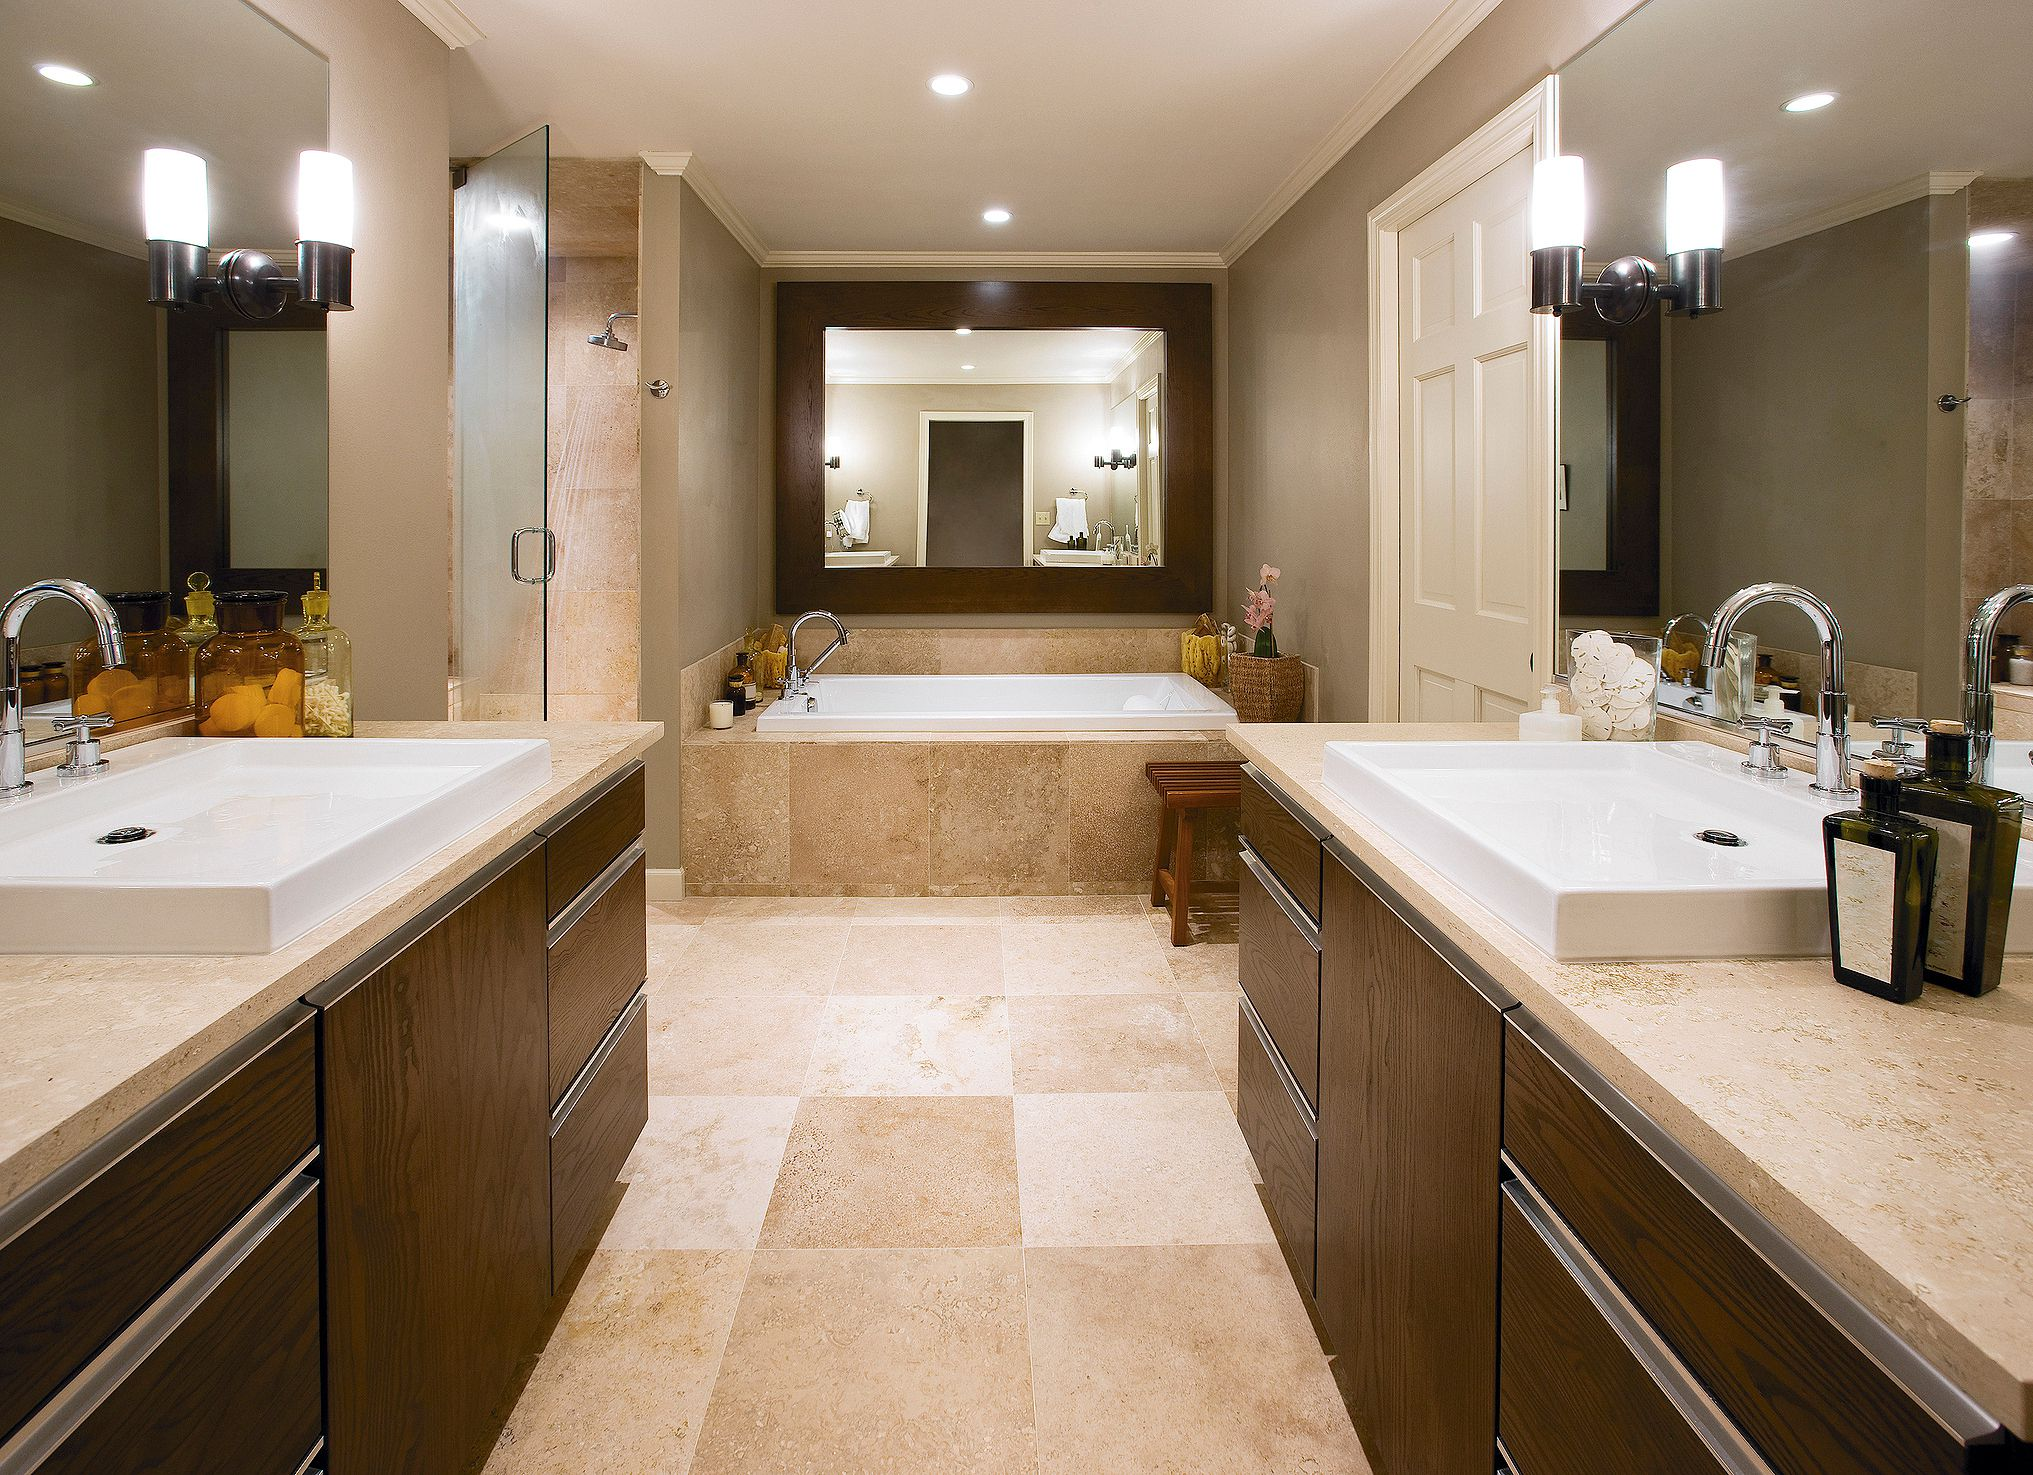 Top 5 bathroom flooring options Best flooring options for small bathrooms